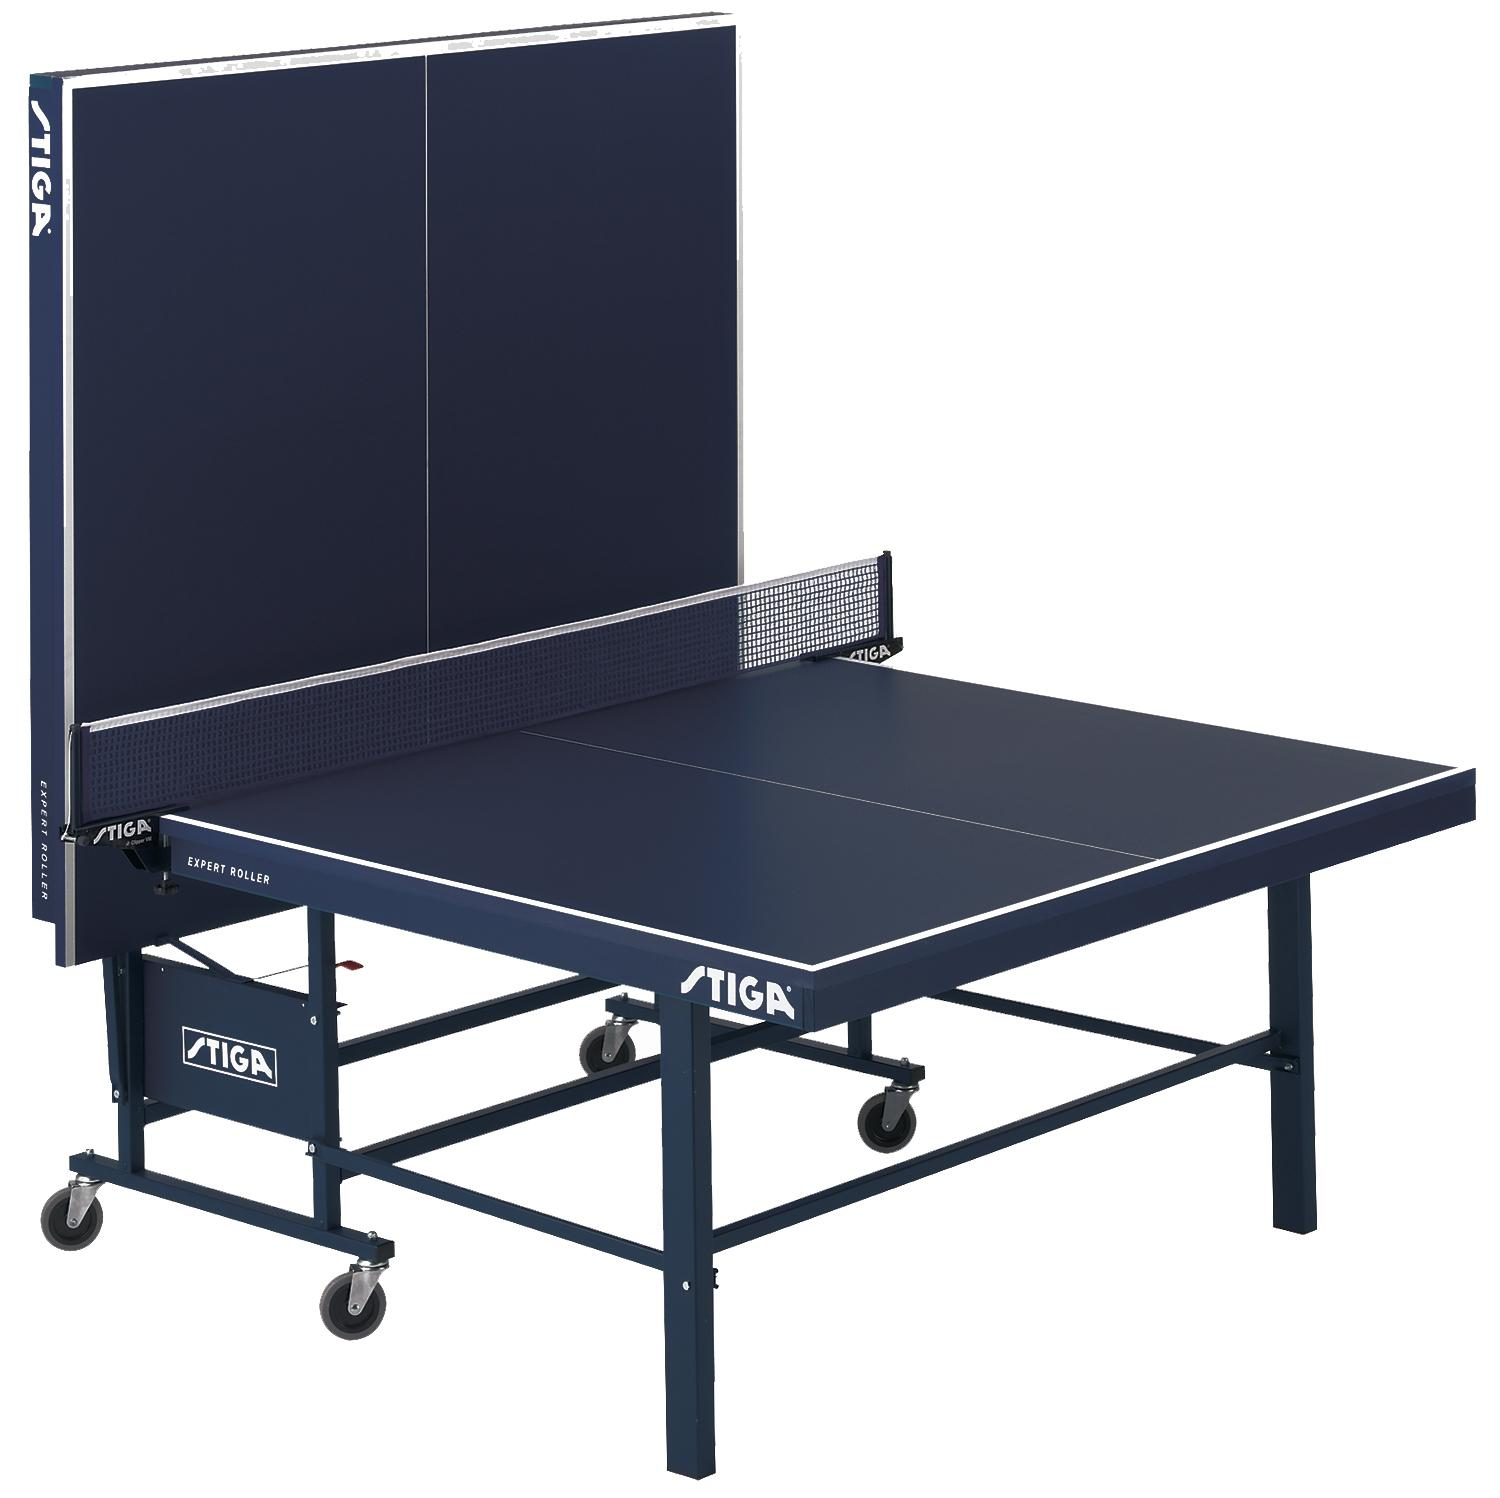 stiga expert roller table tennis table ping pong table sports outdoors. Black Bedroom Furniture Sets. Home Design Ideas